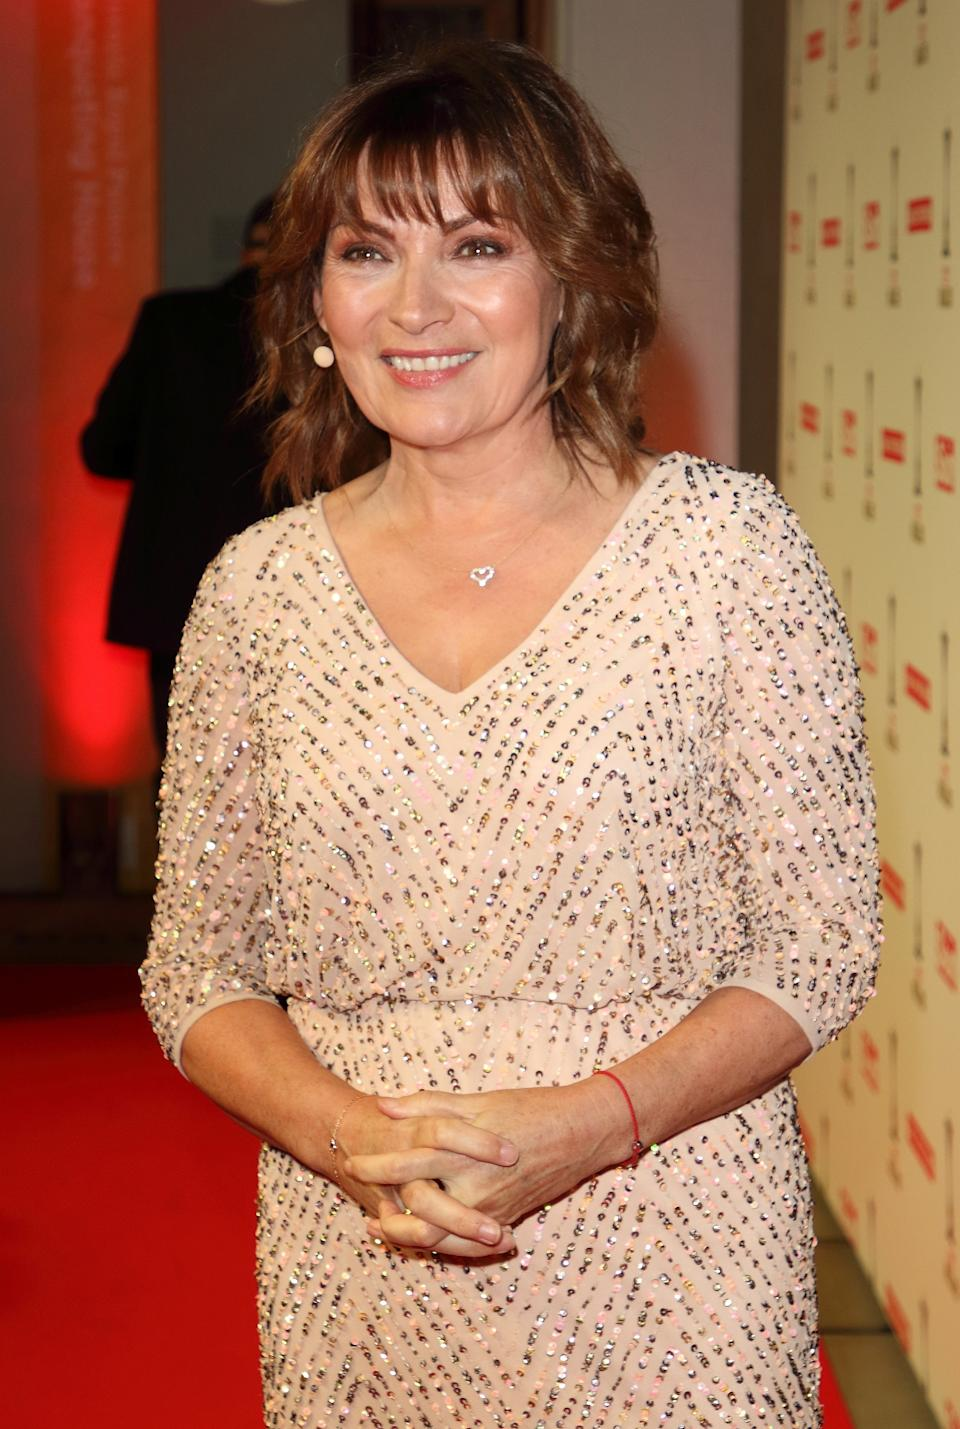 Lorraine Kelly attends The Sun Military Awards 2020 at the Banqueting House in London. (Photo by Keith Mayhew / SOPA Images/Sipa USA)